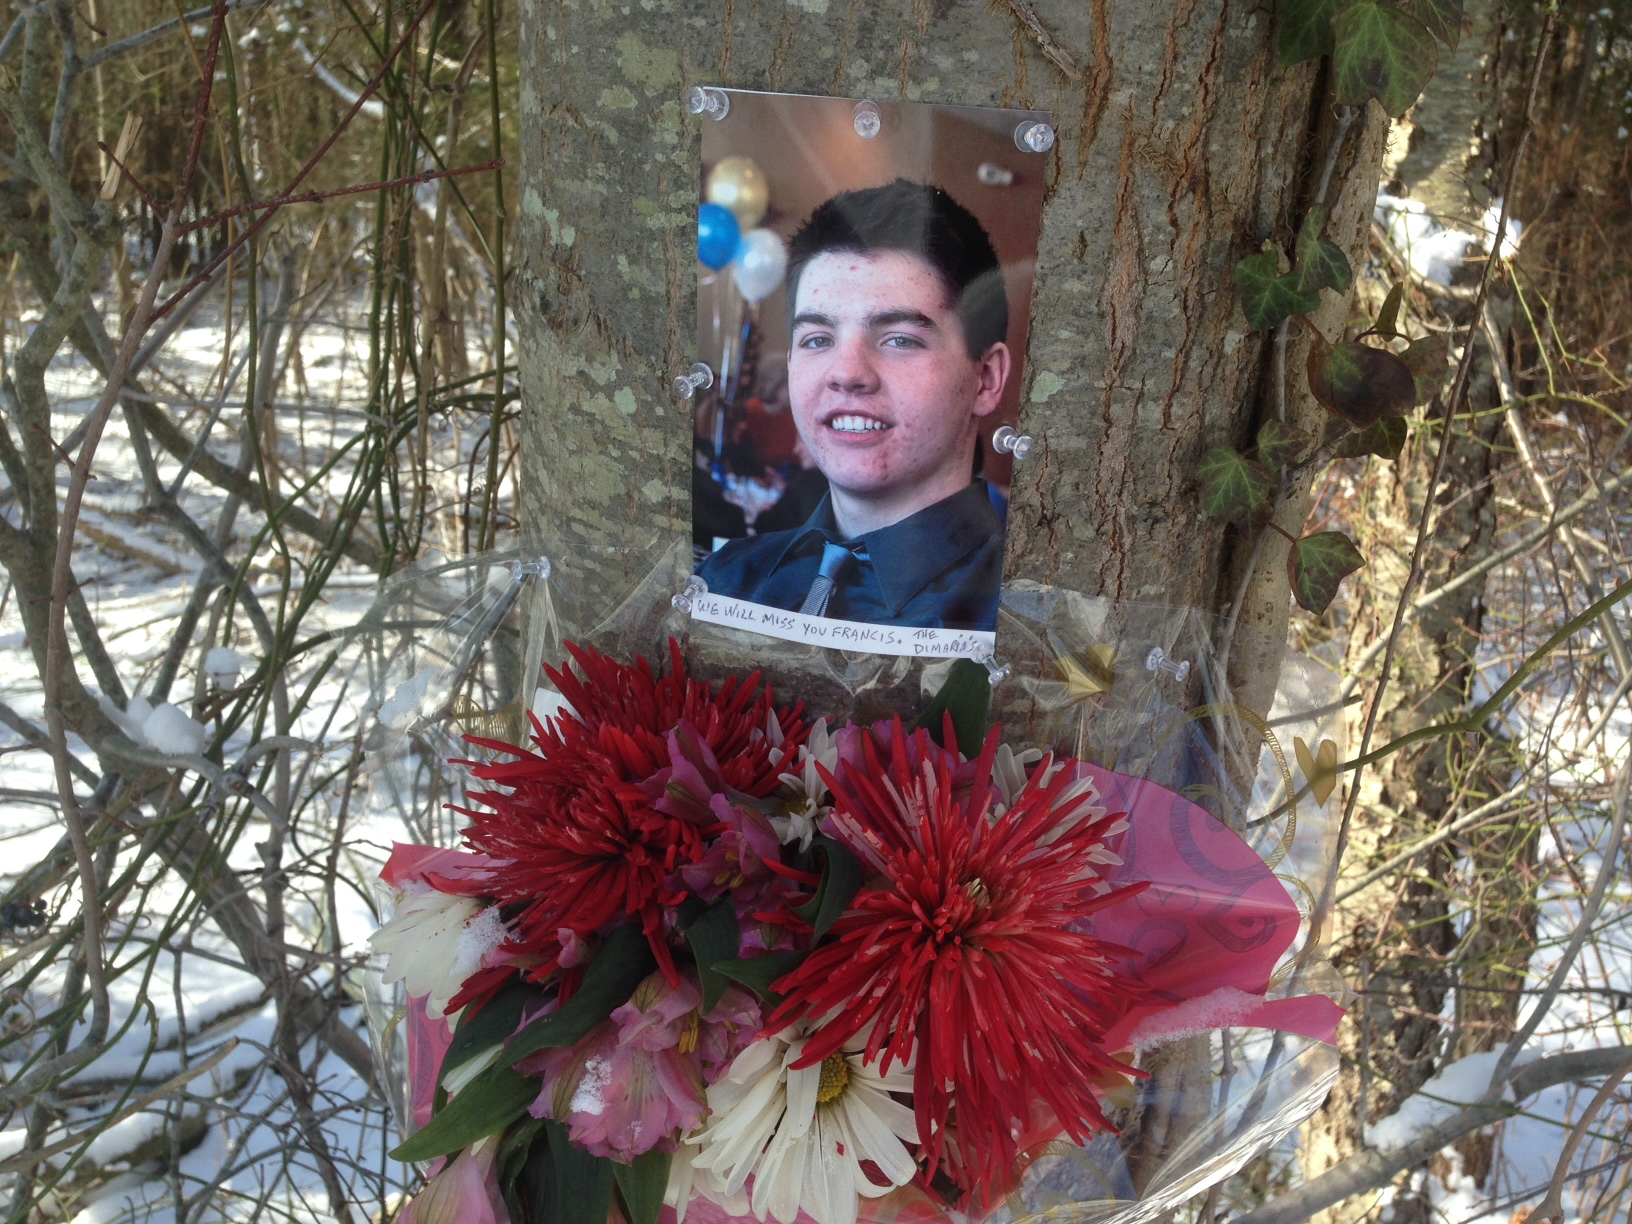 A memorial to Francis Duddy at the scene of a fatal car accident in Feb. 2014. (File Photo)